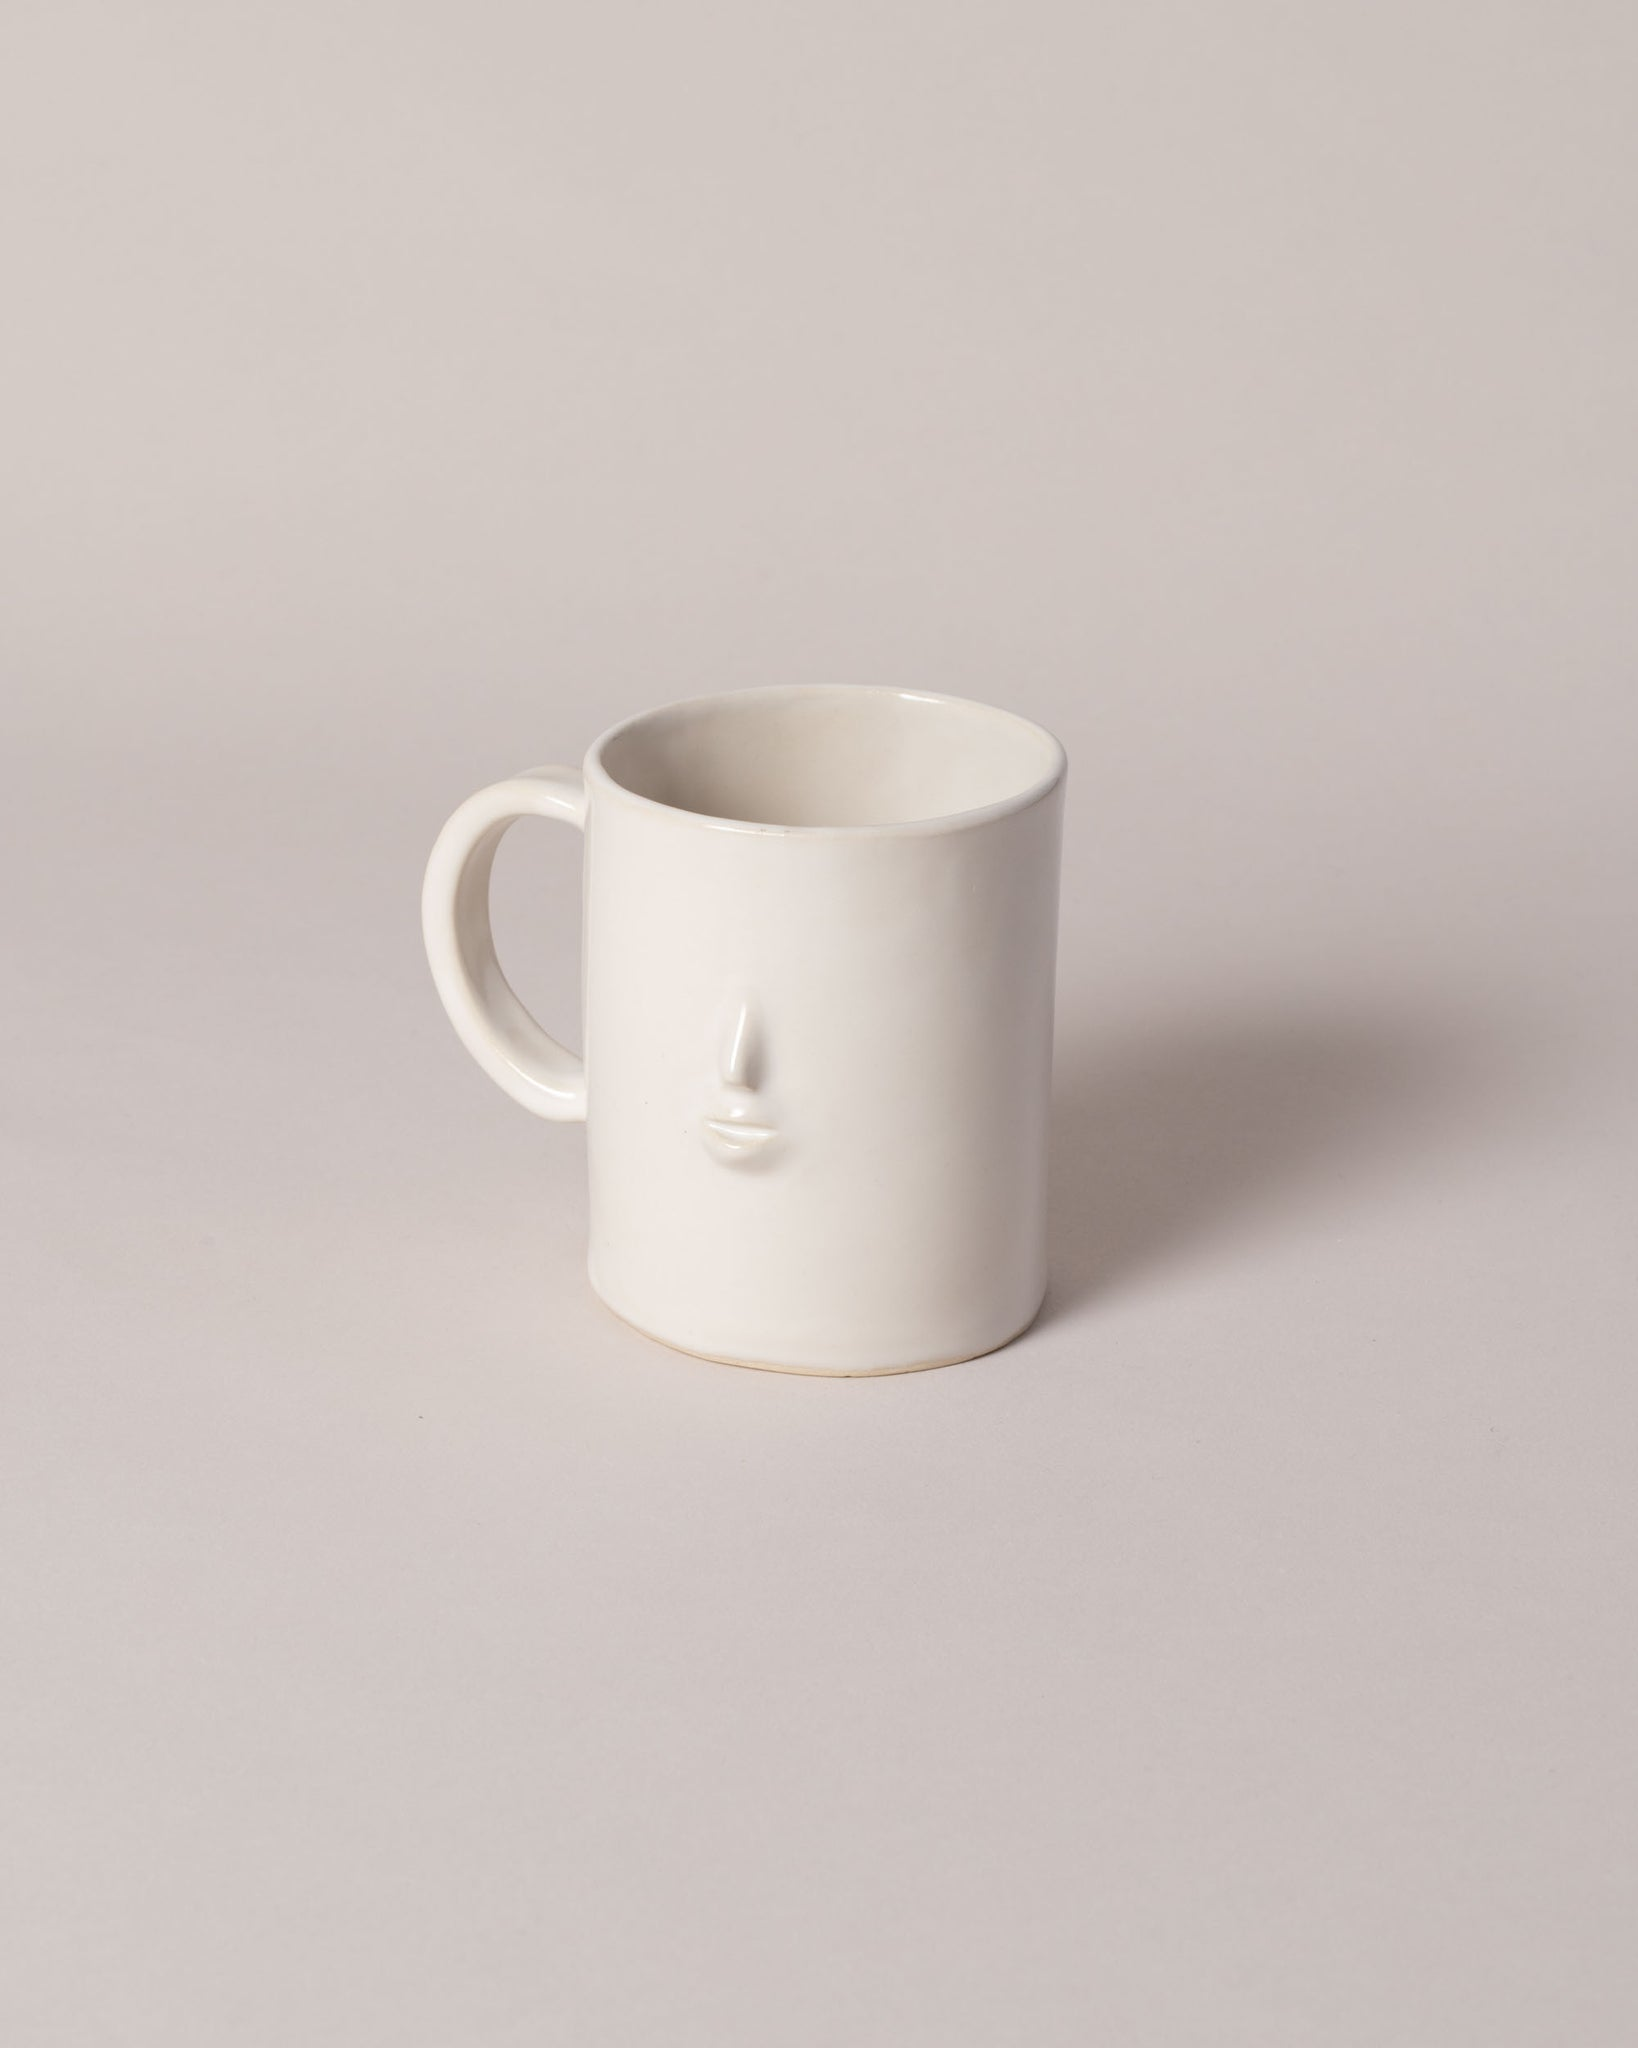 Rami Kim Face Mug in satin white